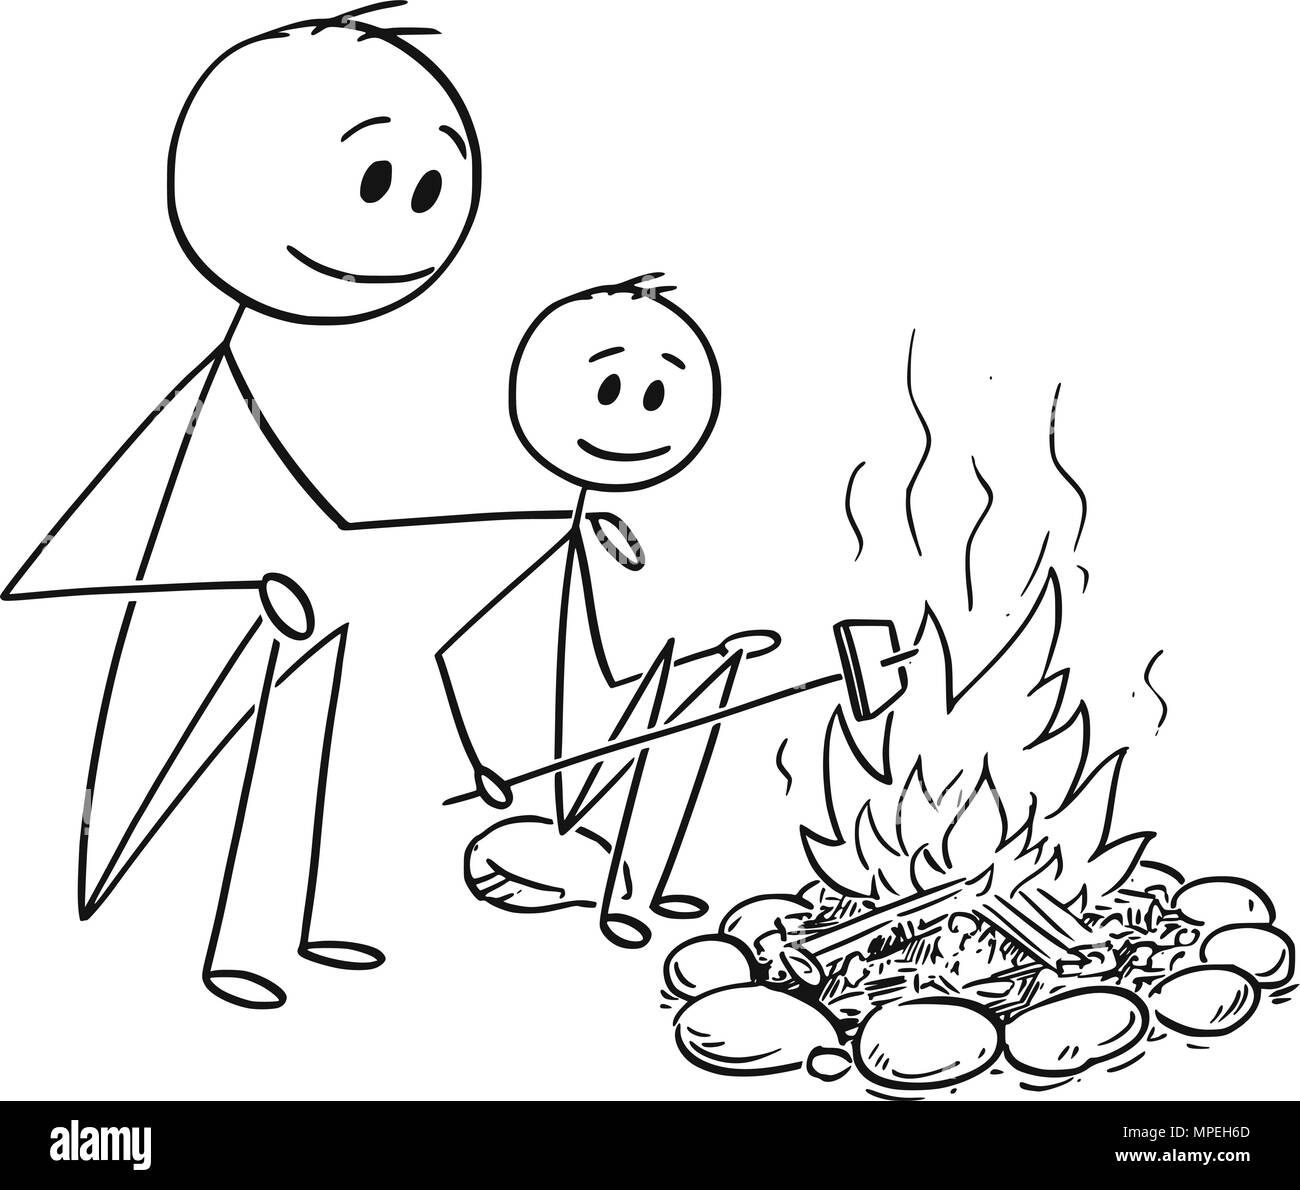 Cartoon of Father and Son Sitting Around Fire or Campfire - Stock Image